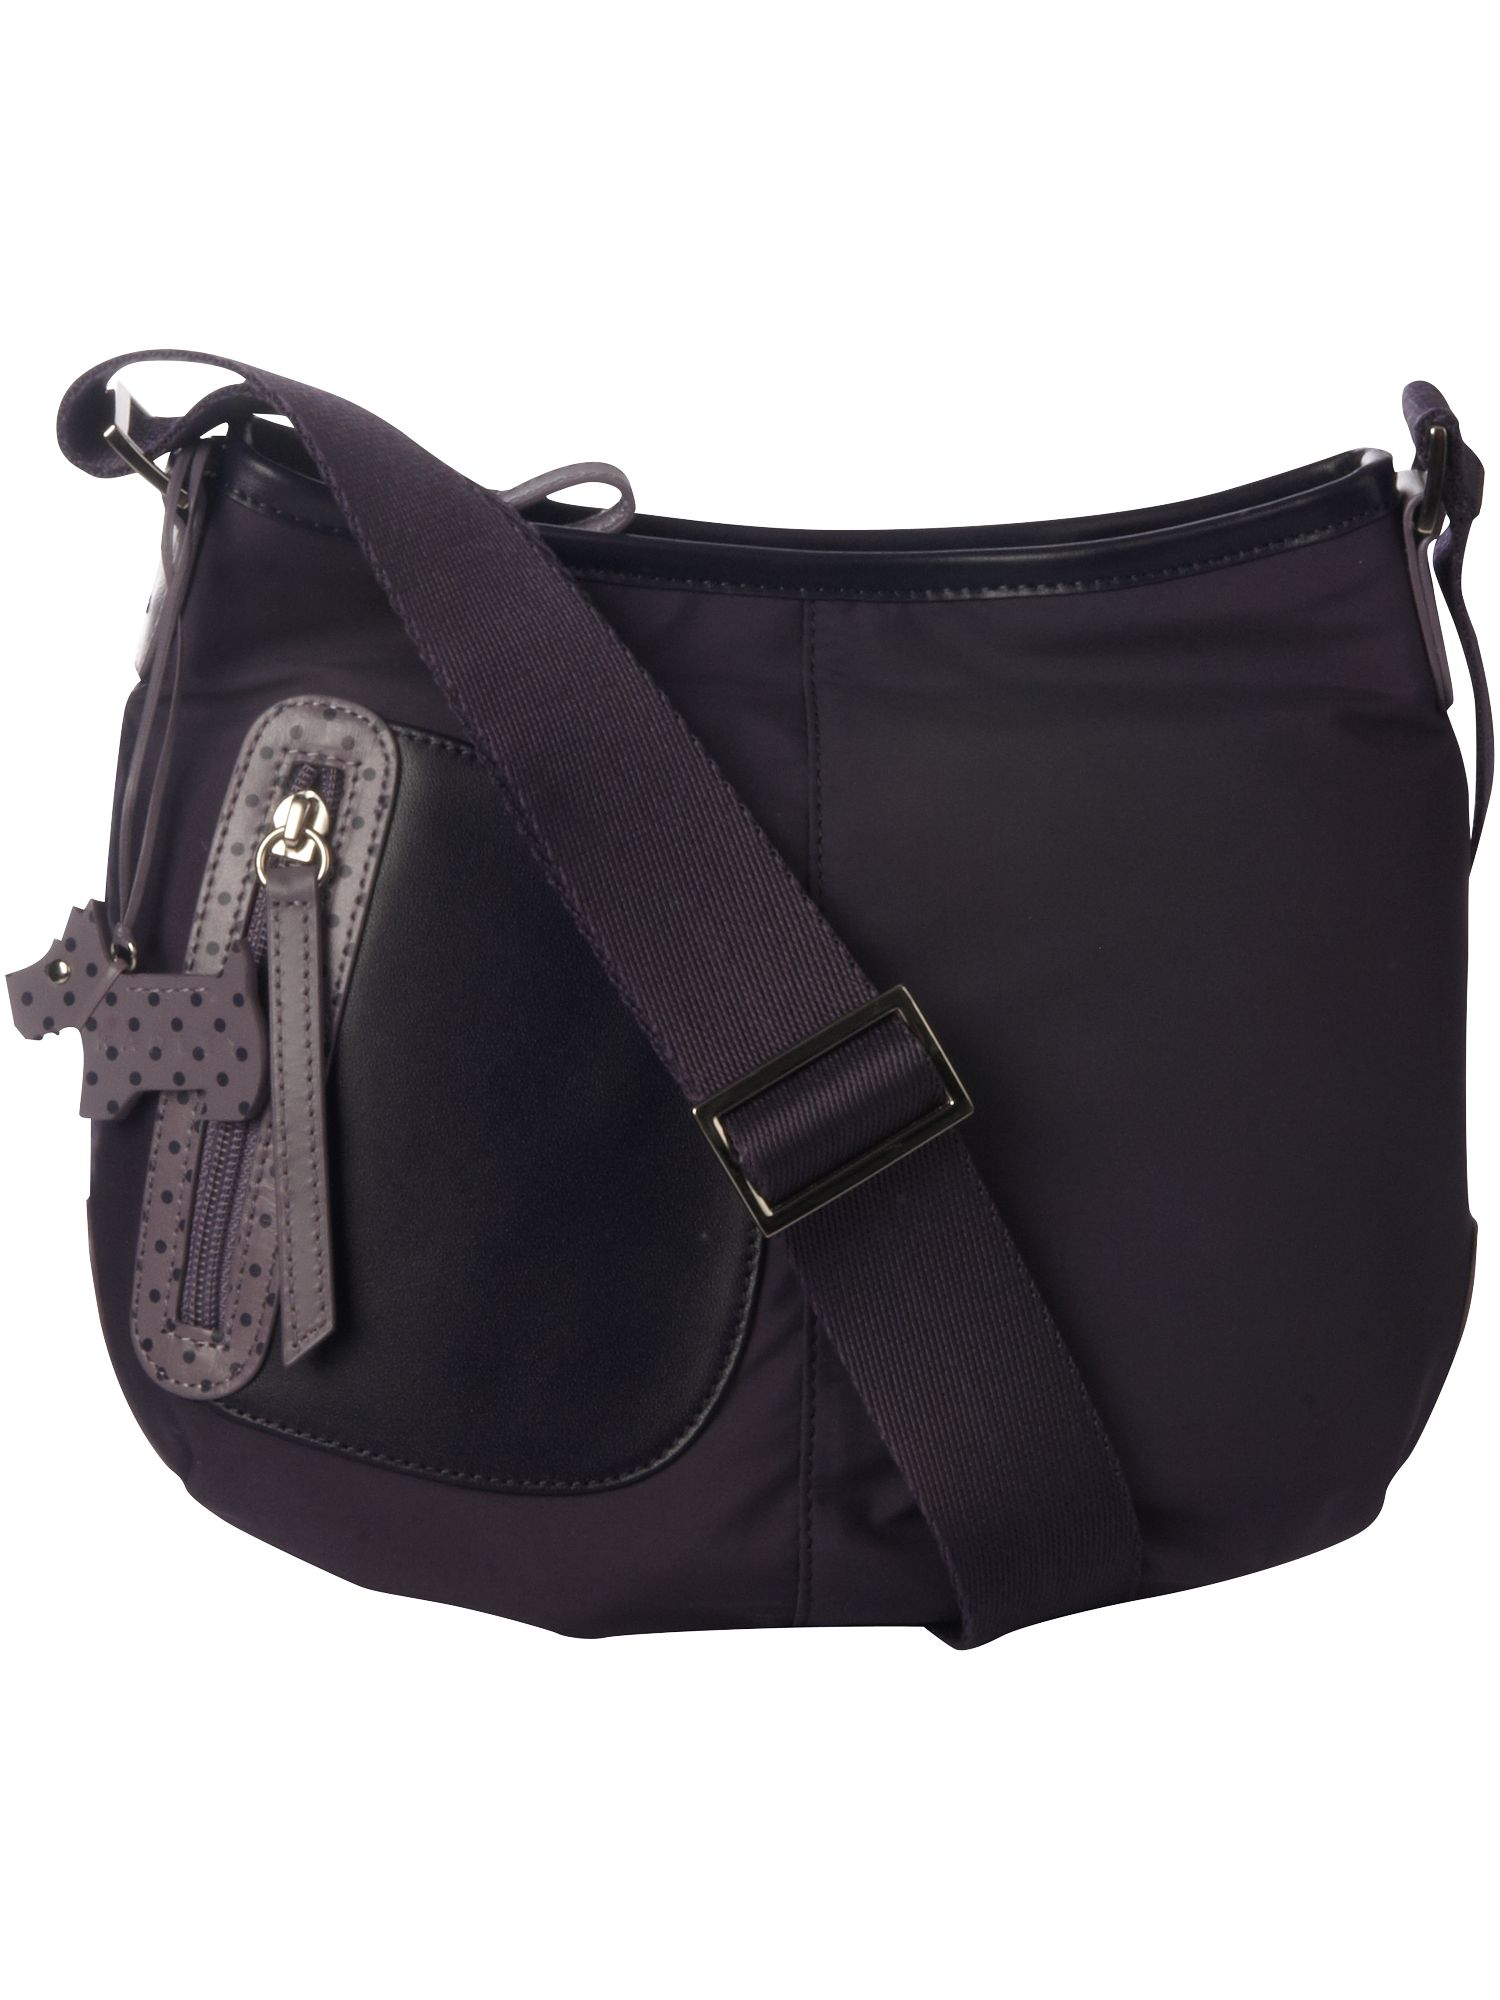 Pursuit small nylon cross body bag